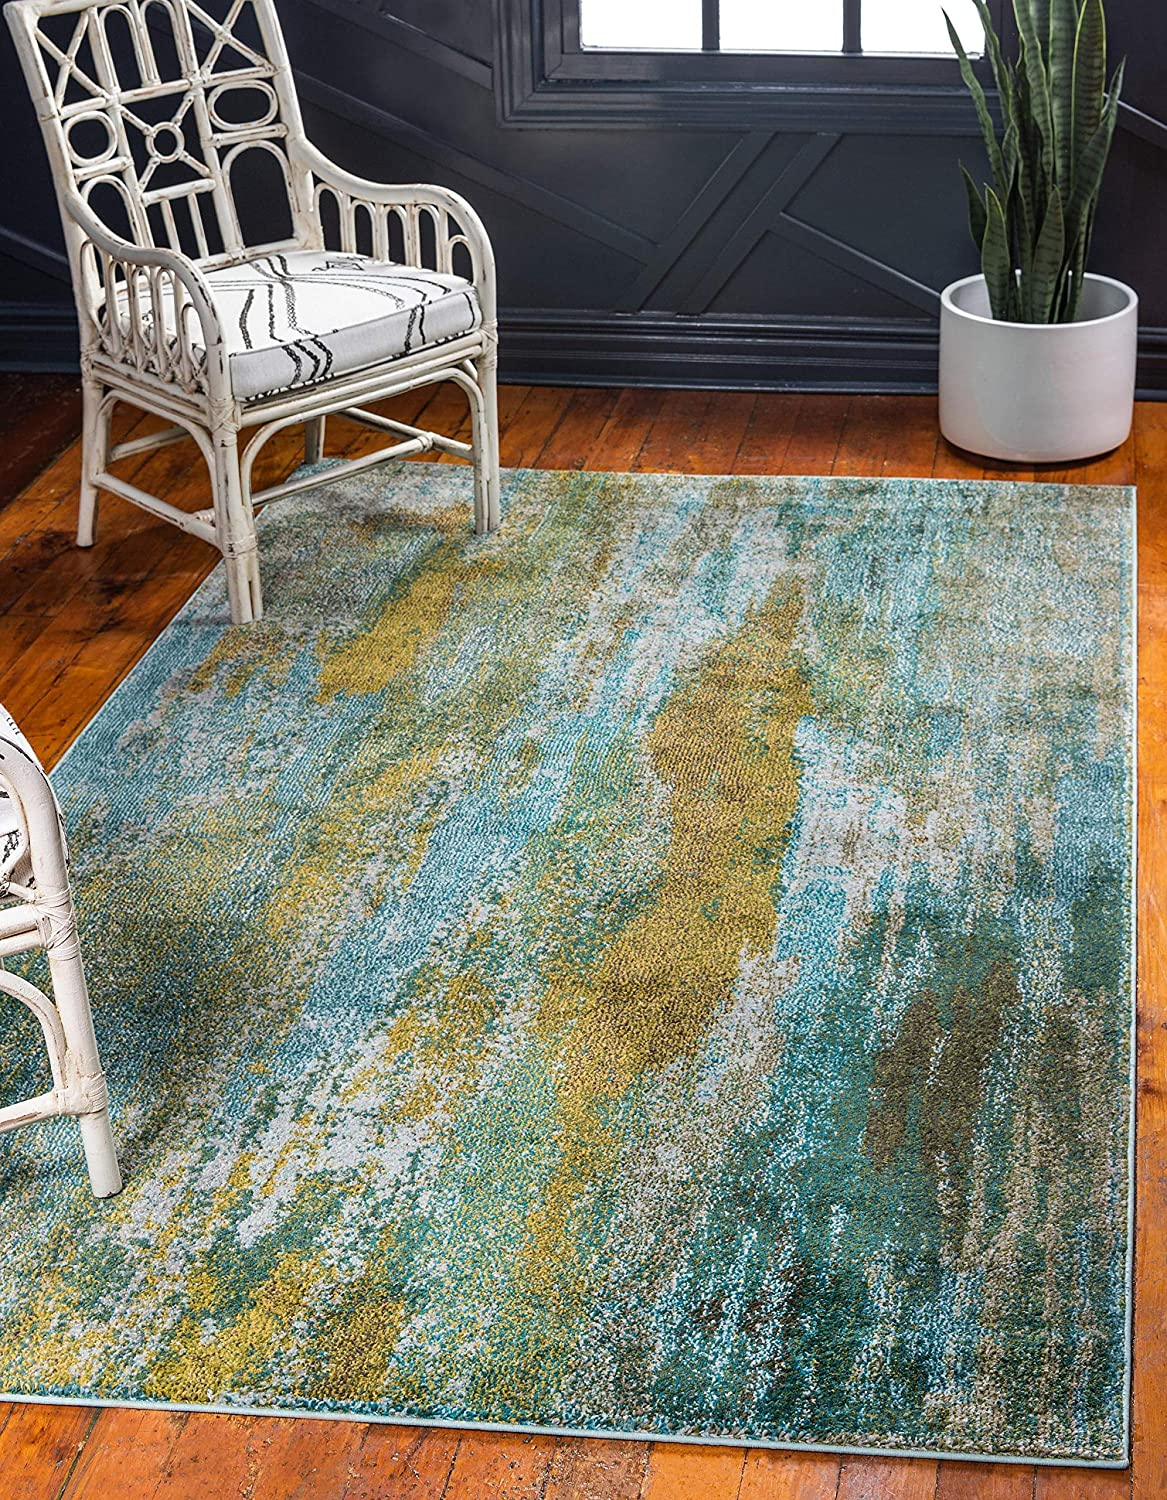 Unique Loom Jardin Collection Vibrant Abstract Turquoise Area Rug (10' 0 x 13' 0)